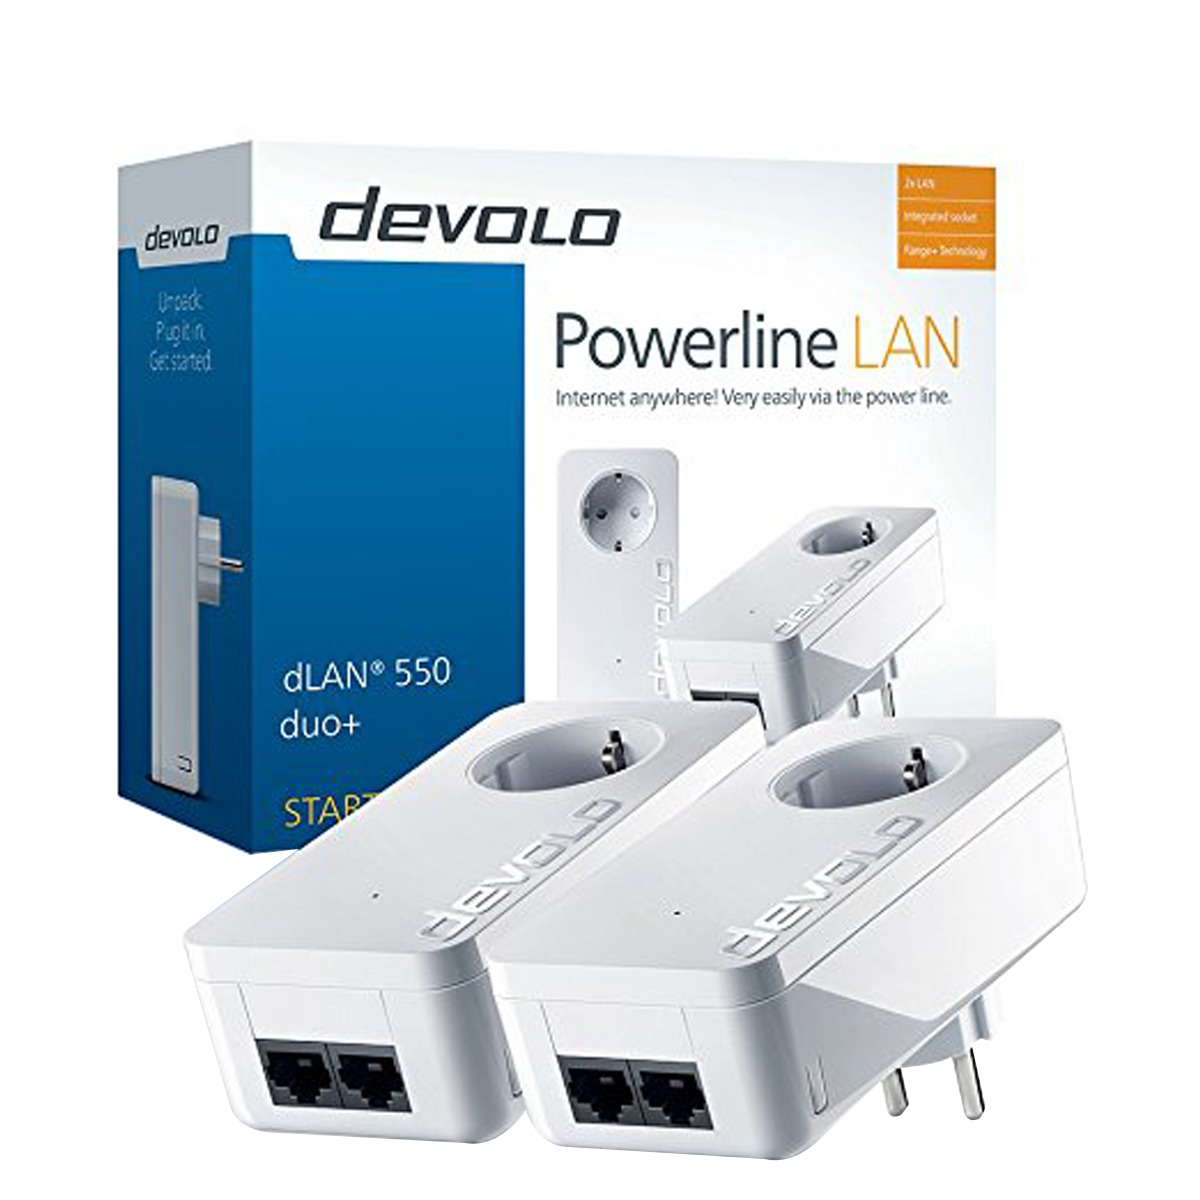 Kit de 2 adaptadores PLC Devolo dLAN 550 duo+ Starter Kit